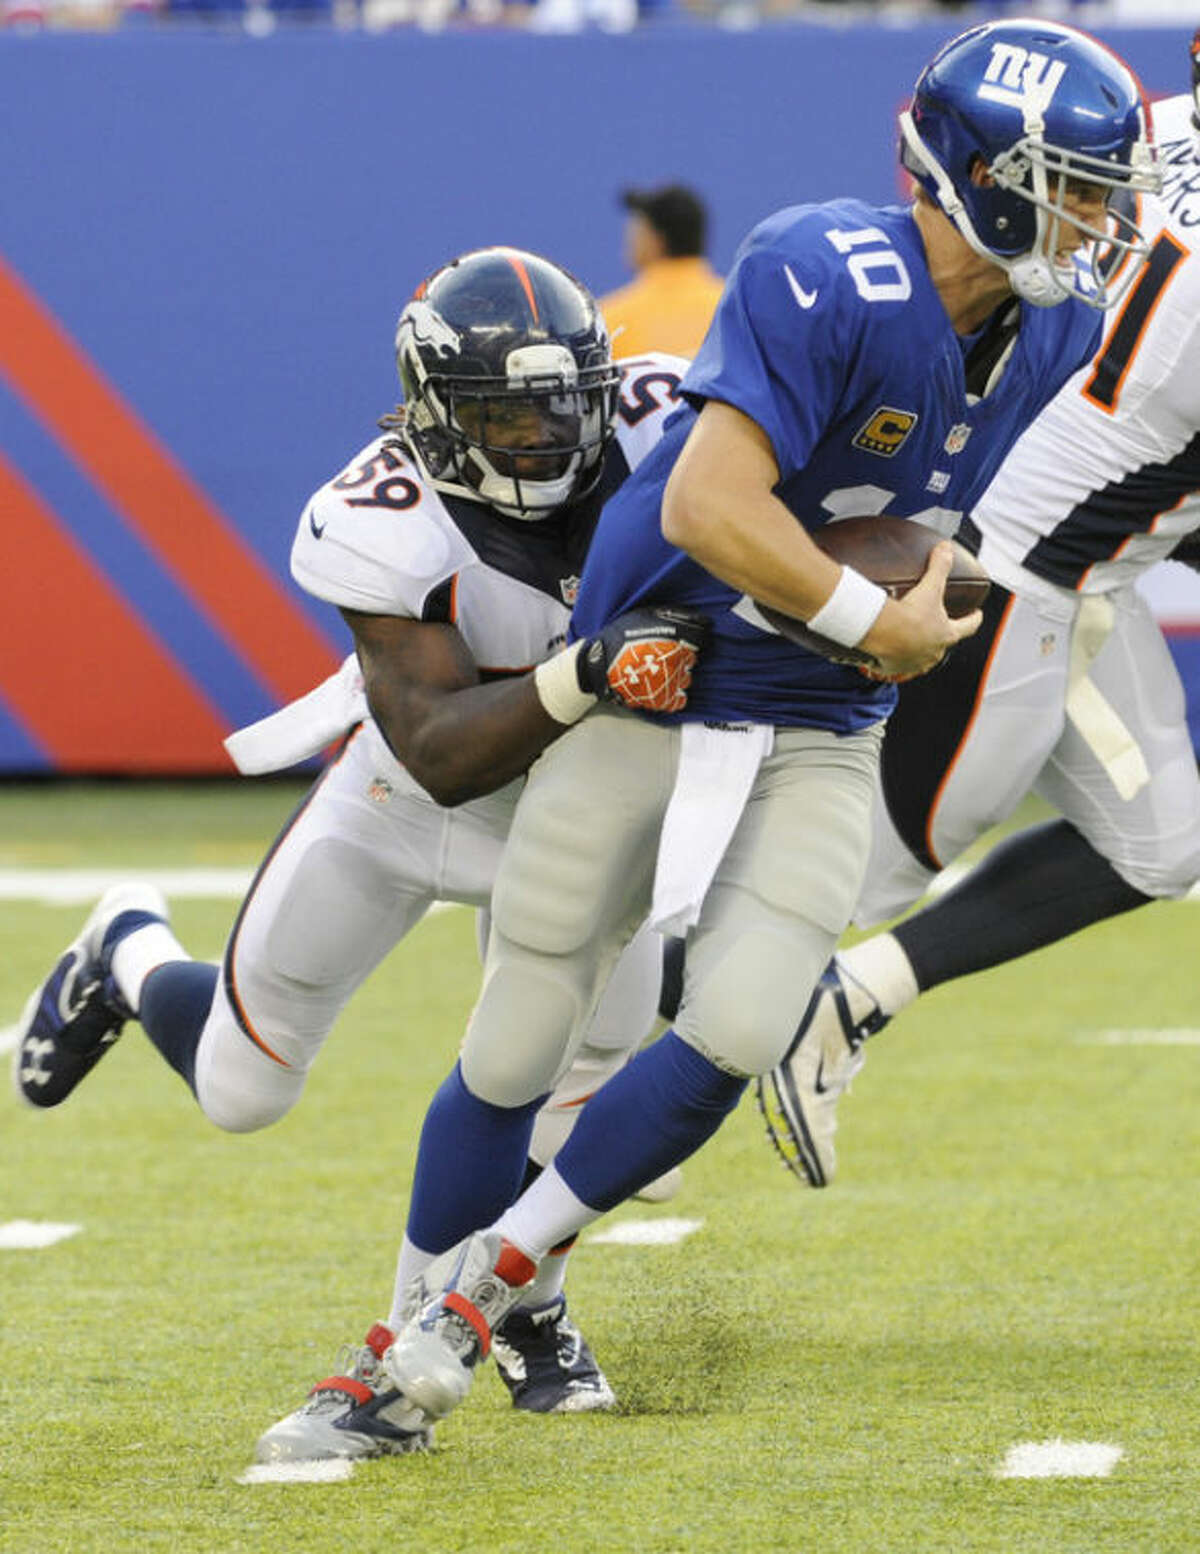 Denver Broncos' Danny Trevathan (59) sacks New York Giants quarterback Eli Manning (10) during the second half of an NFL football game Sunday, Sept. 15, 2013, in East Rutherford, N.J. (AP Photo/Bill Kostroun)